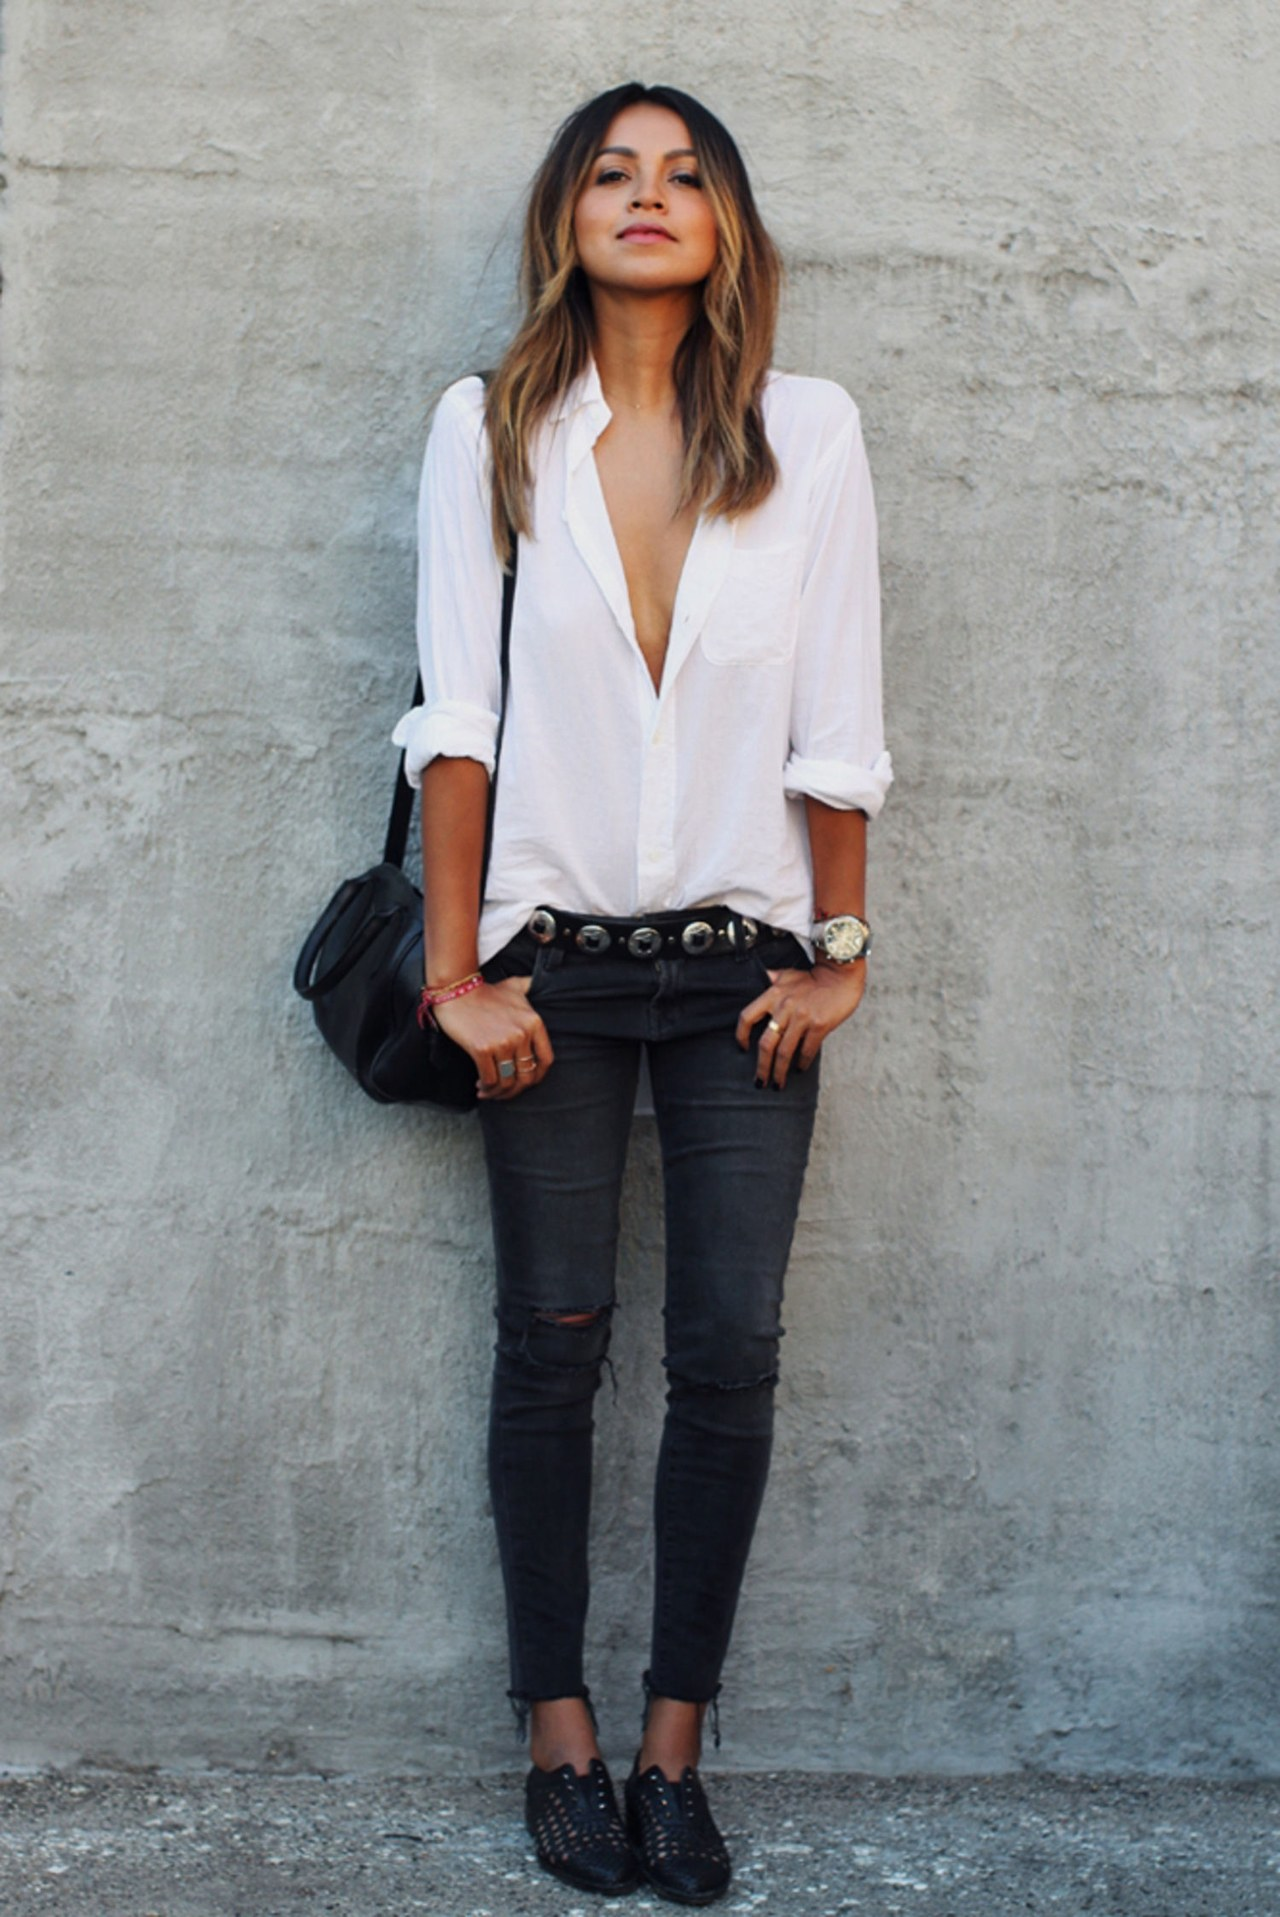 New Trendy Black Jeans Outfits Ideas For Women 26